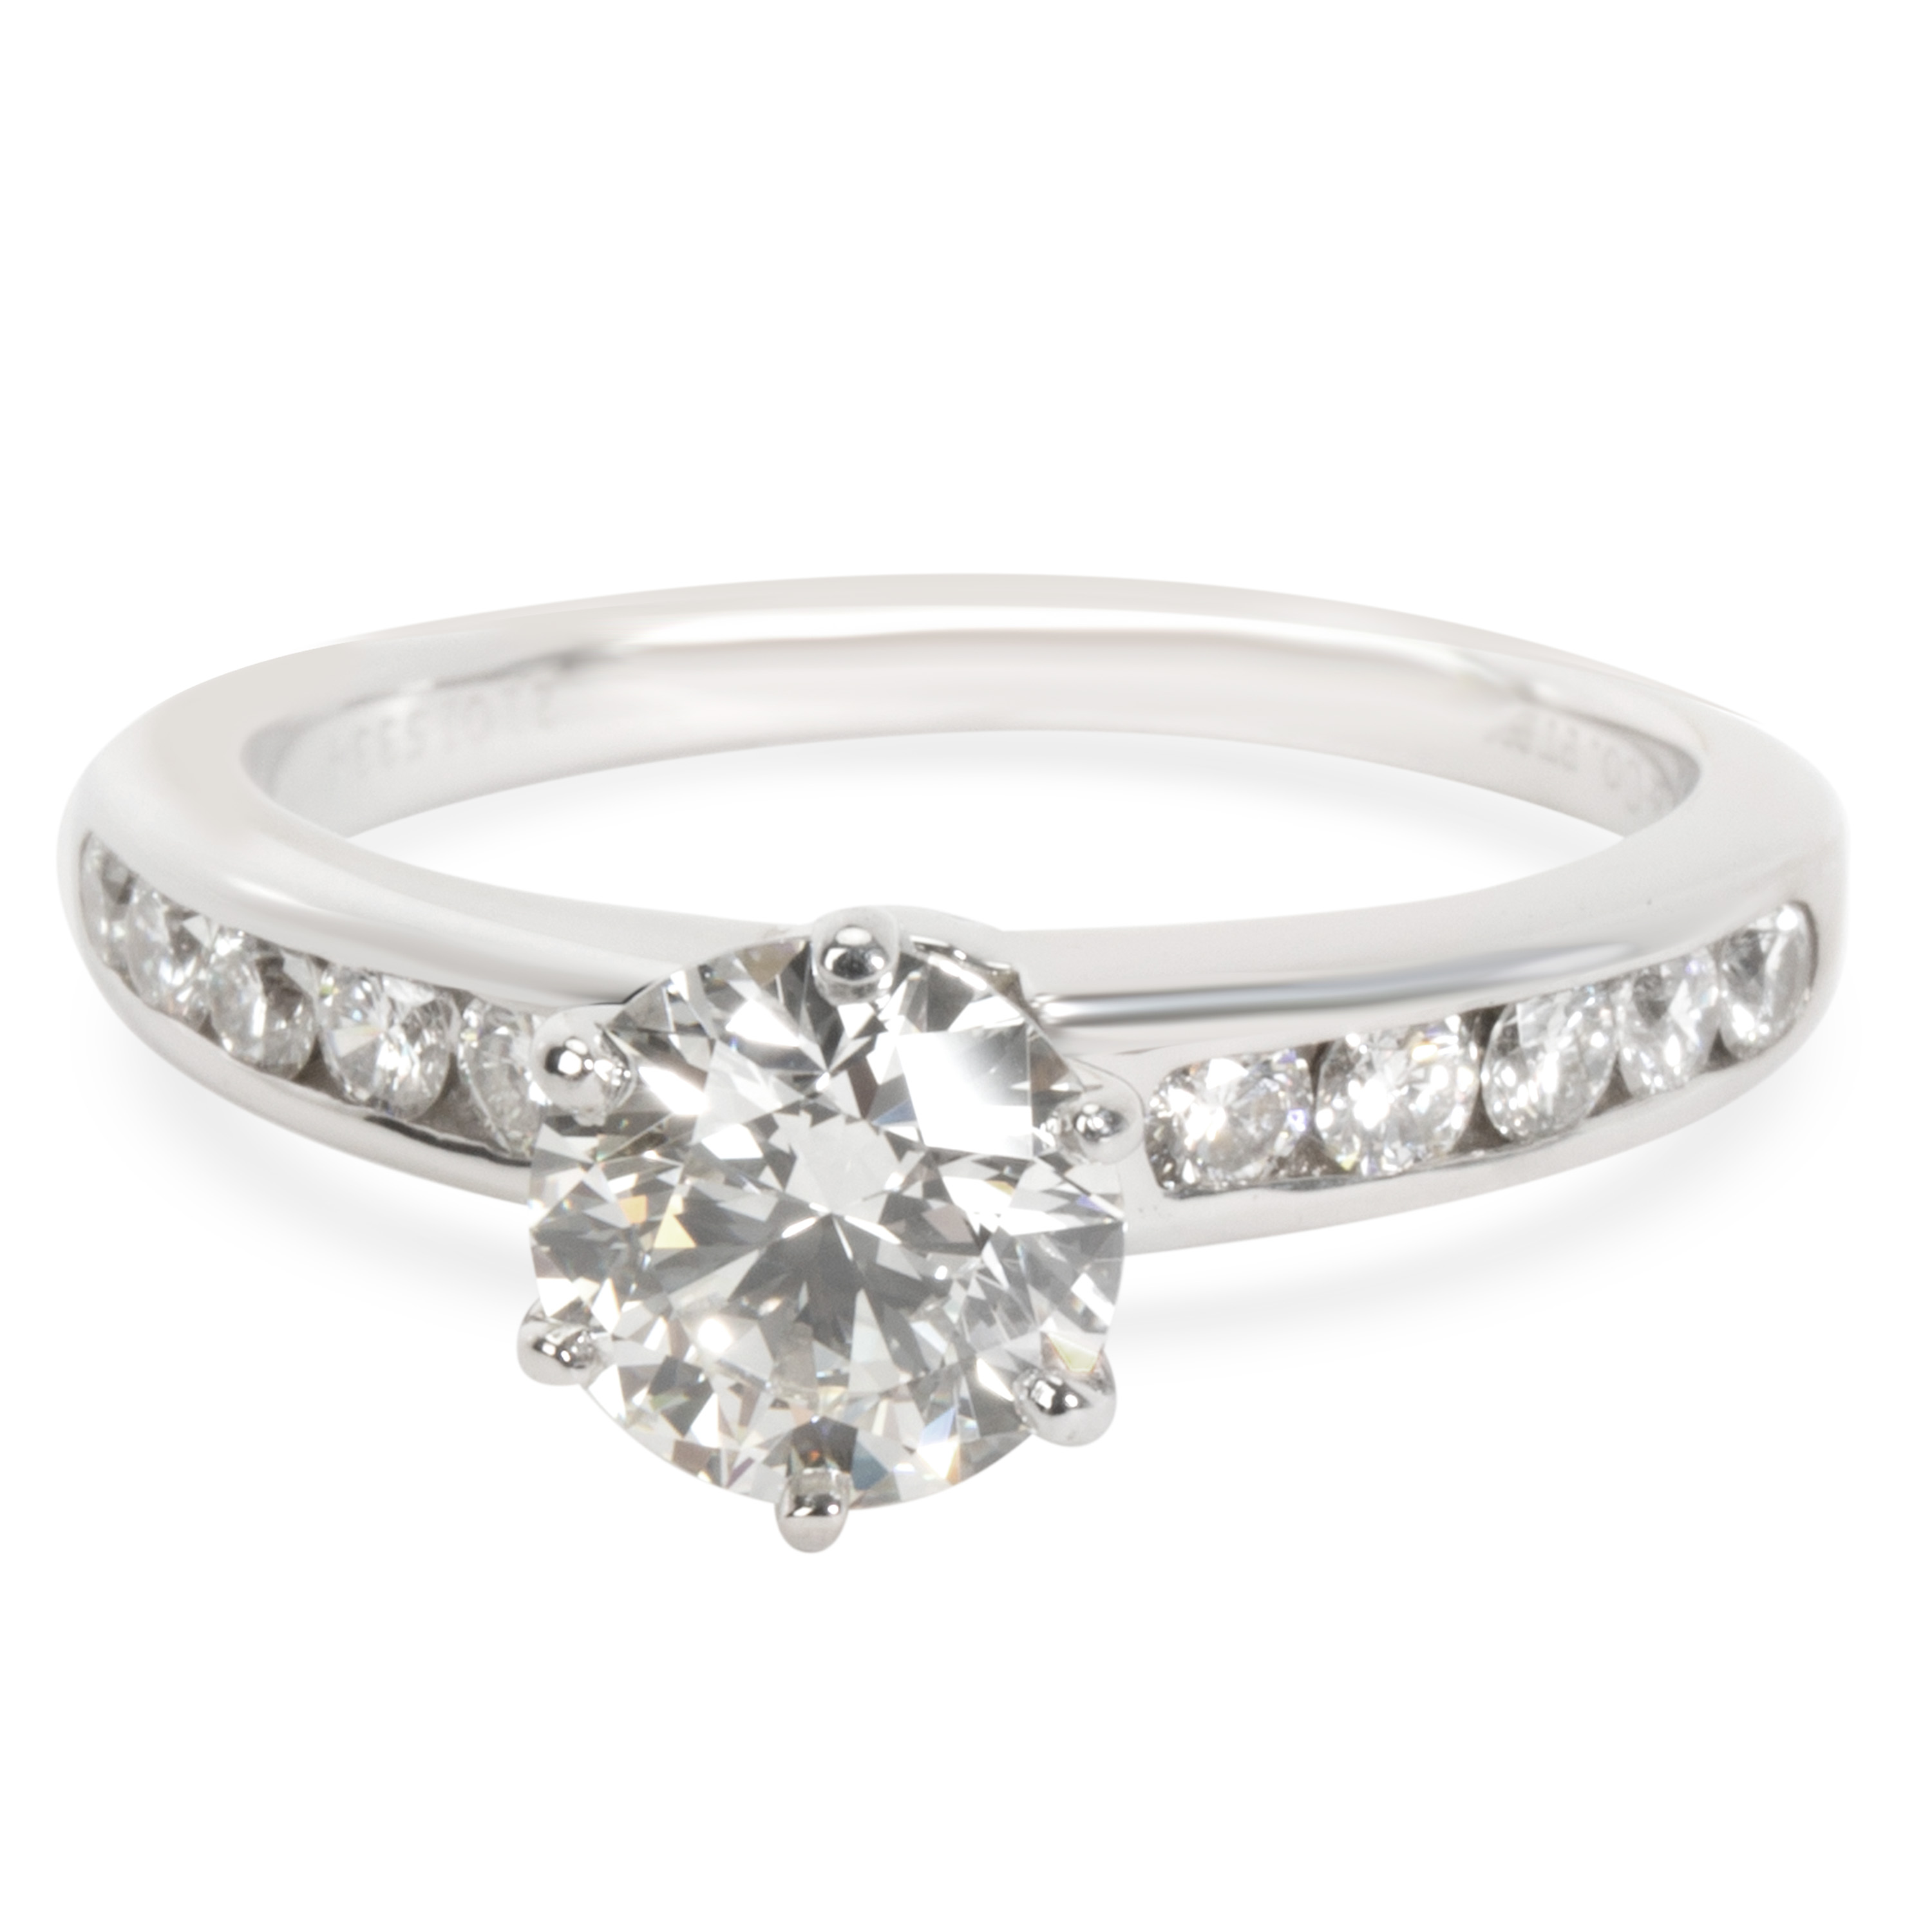 b55815d91d516 Details about Tiffany & Co. Channel Set Diamond Engagement Ring in Platinum  I VS1 1.38 CTW